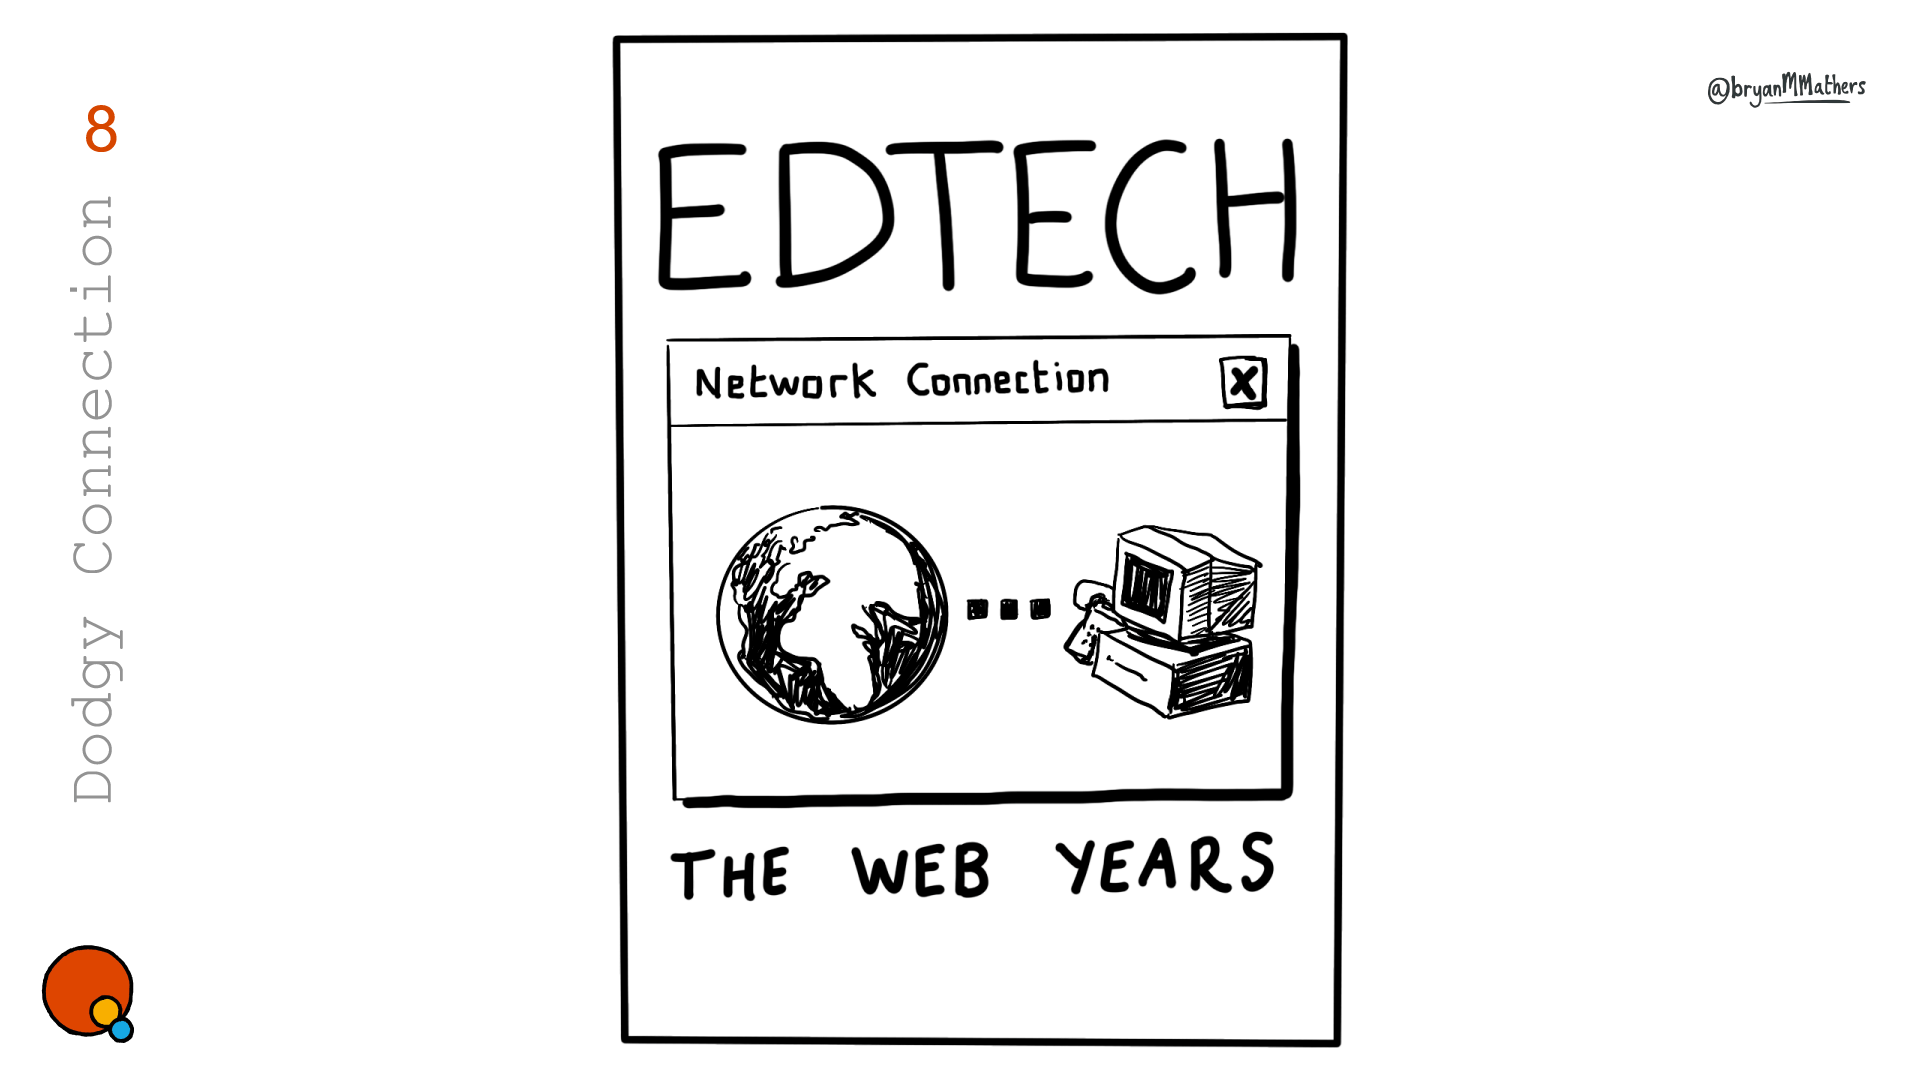 25 Years of EdTech - Dodgy Connection